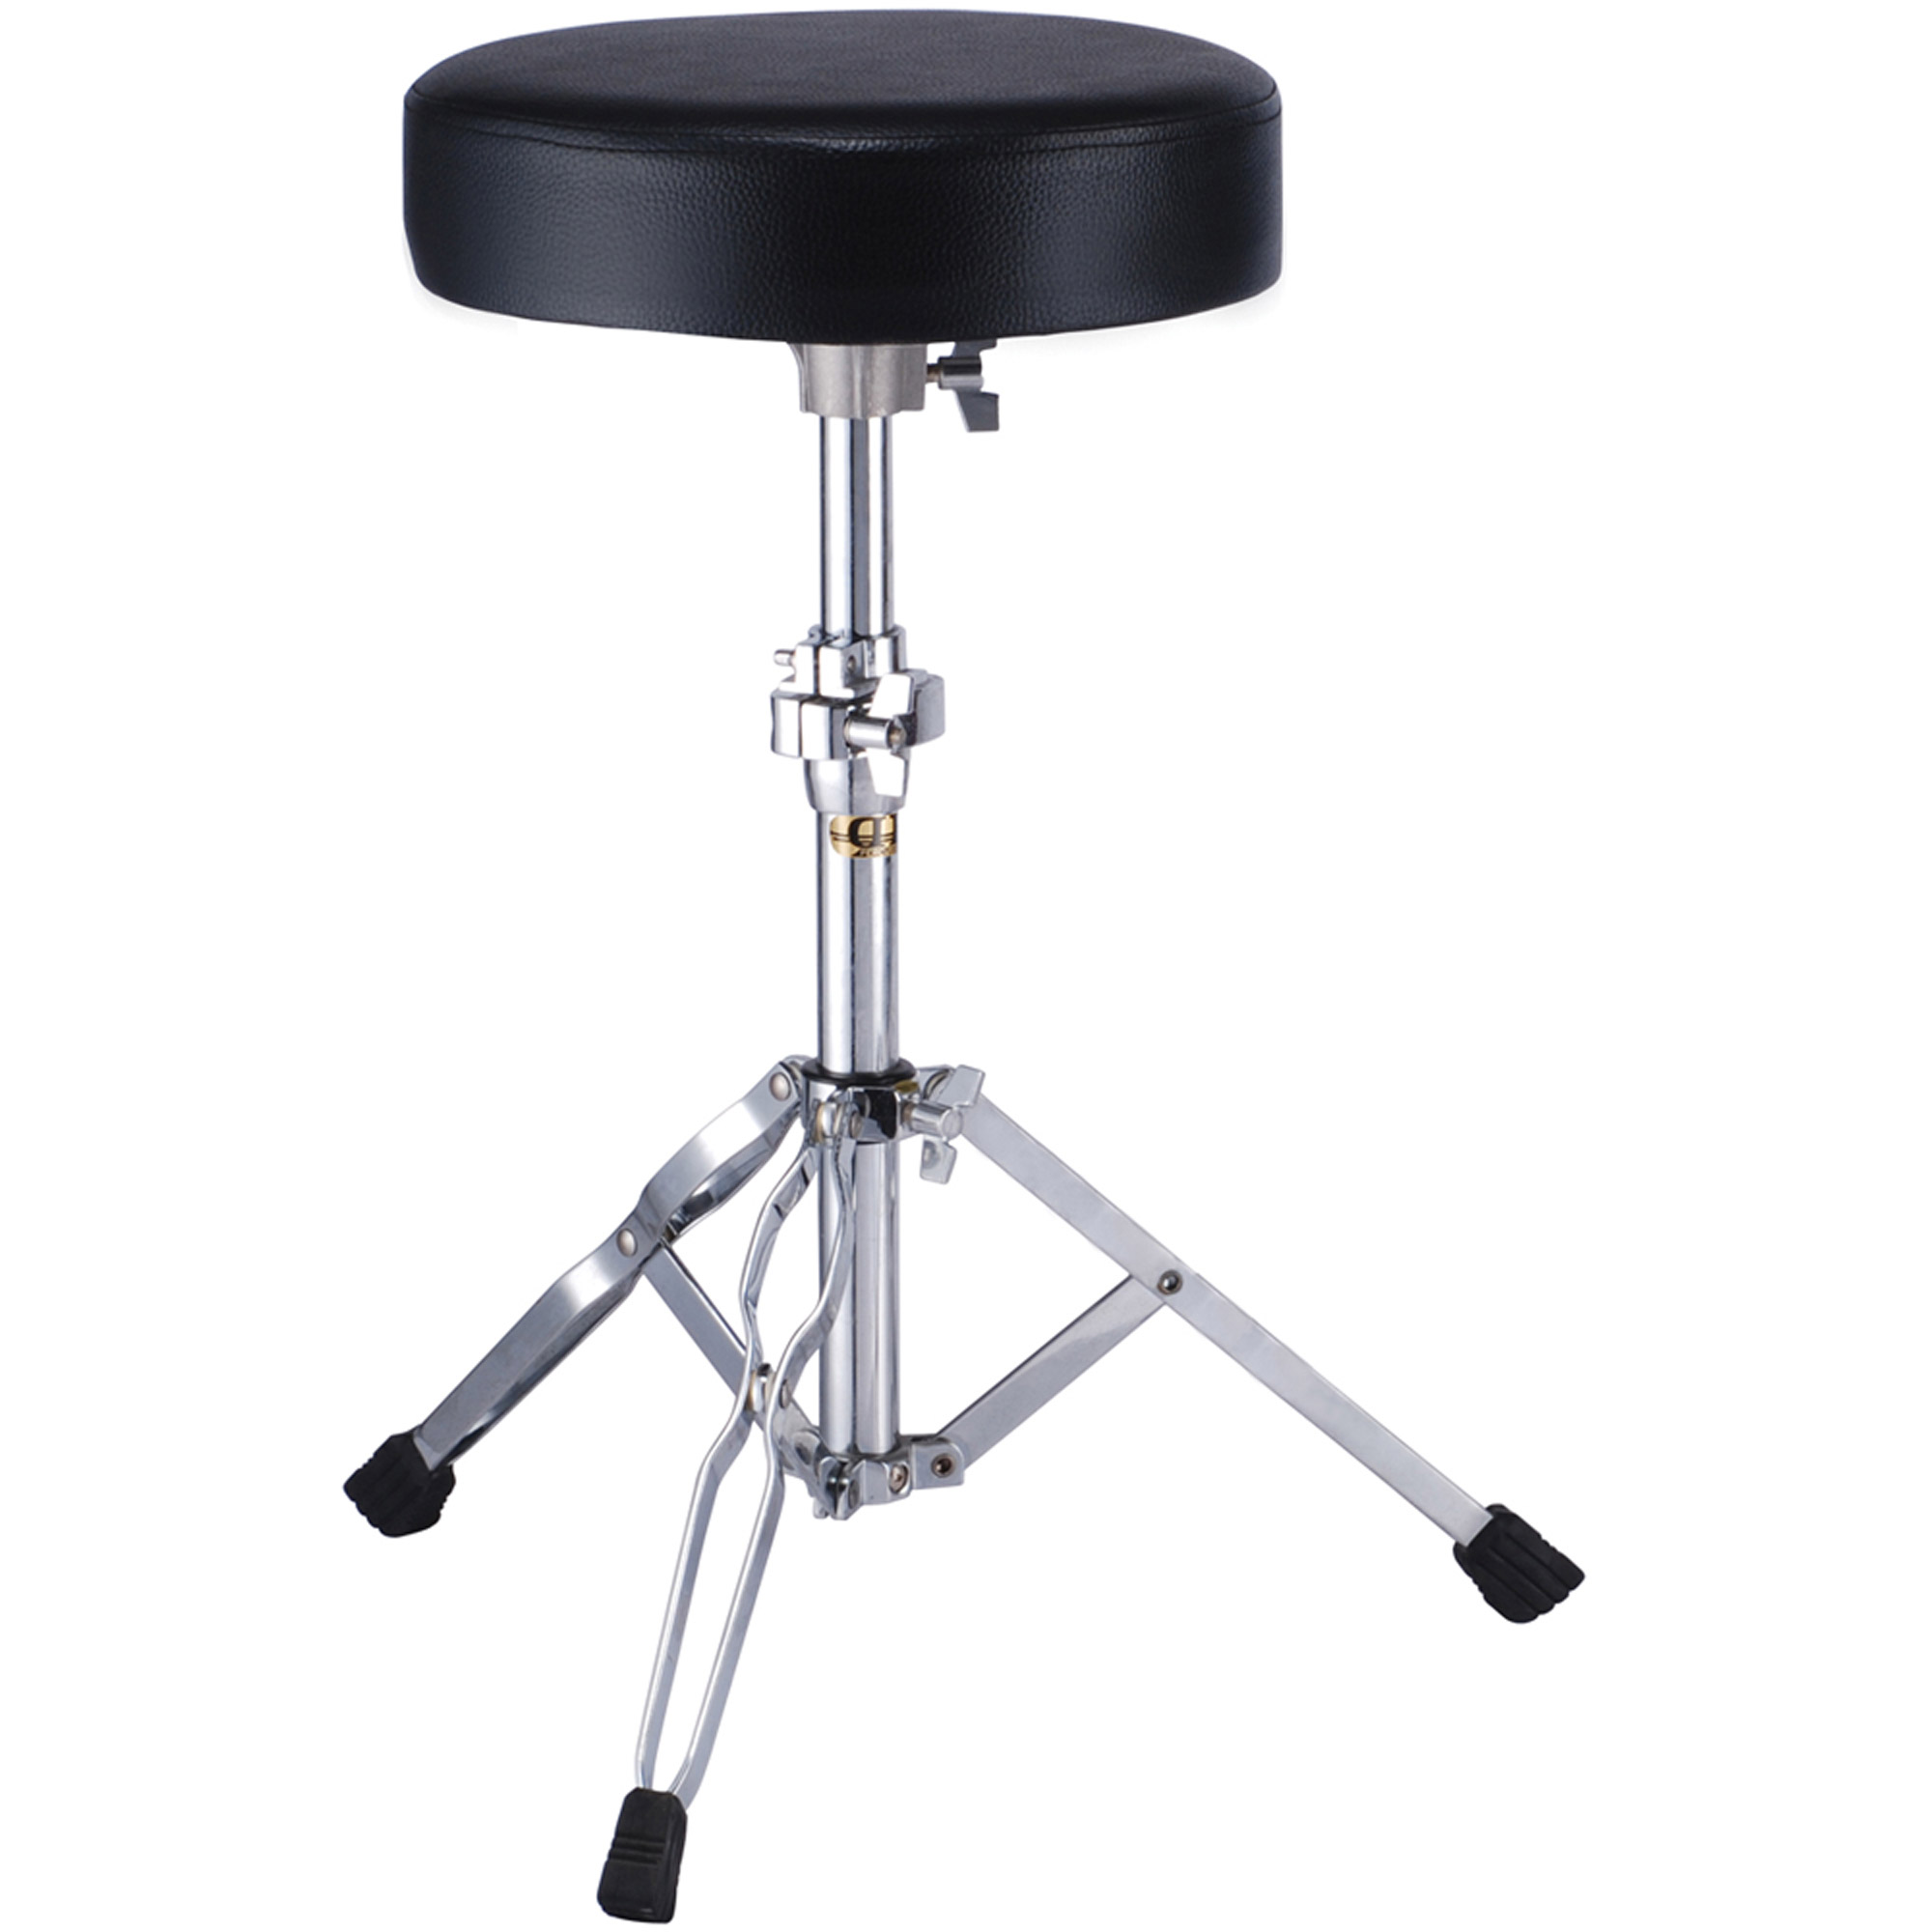 Union DTRS-616B 700 Series Threaded Height Drum Throne by Union